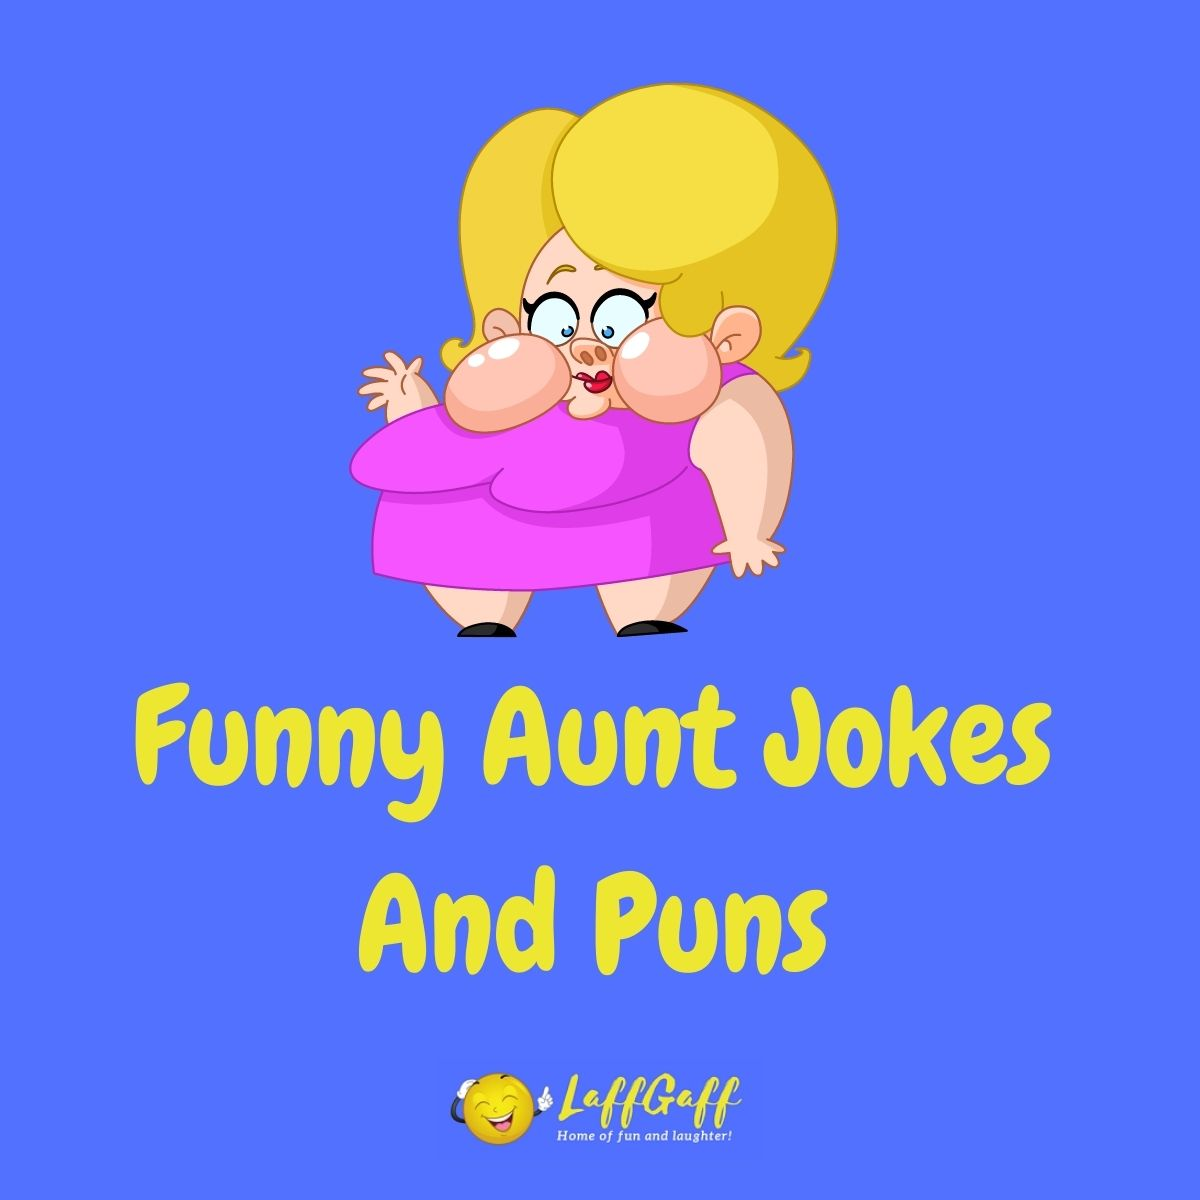 Featured image for a page of funny aunt jokes and puns.